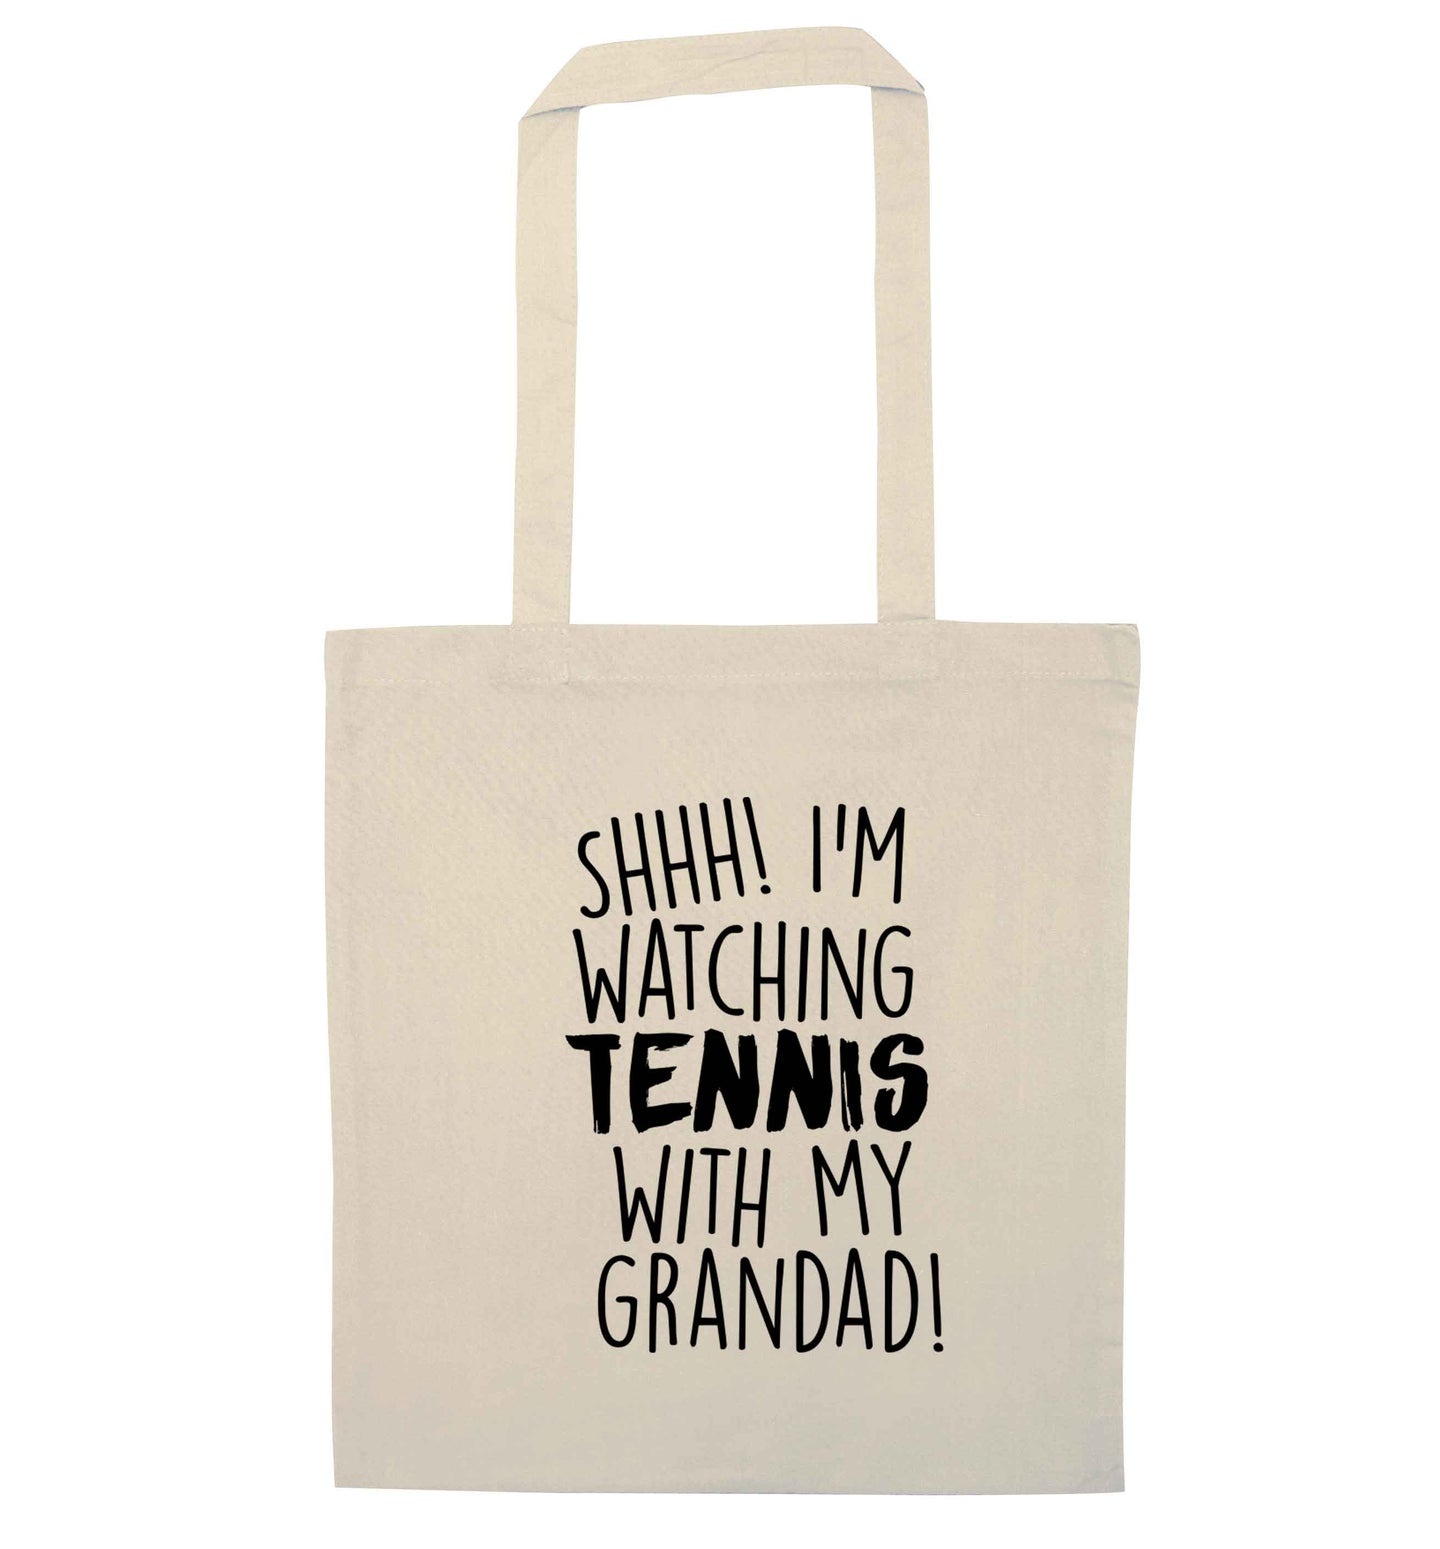 Shh! I'm watching tennis with my grandad! natural tote bag